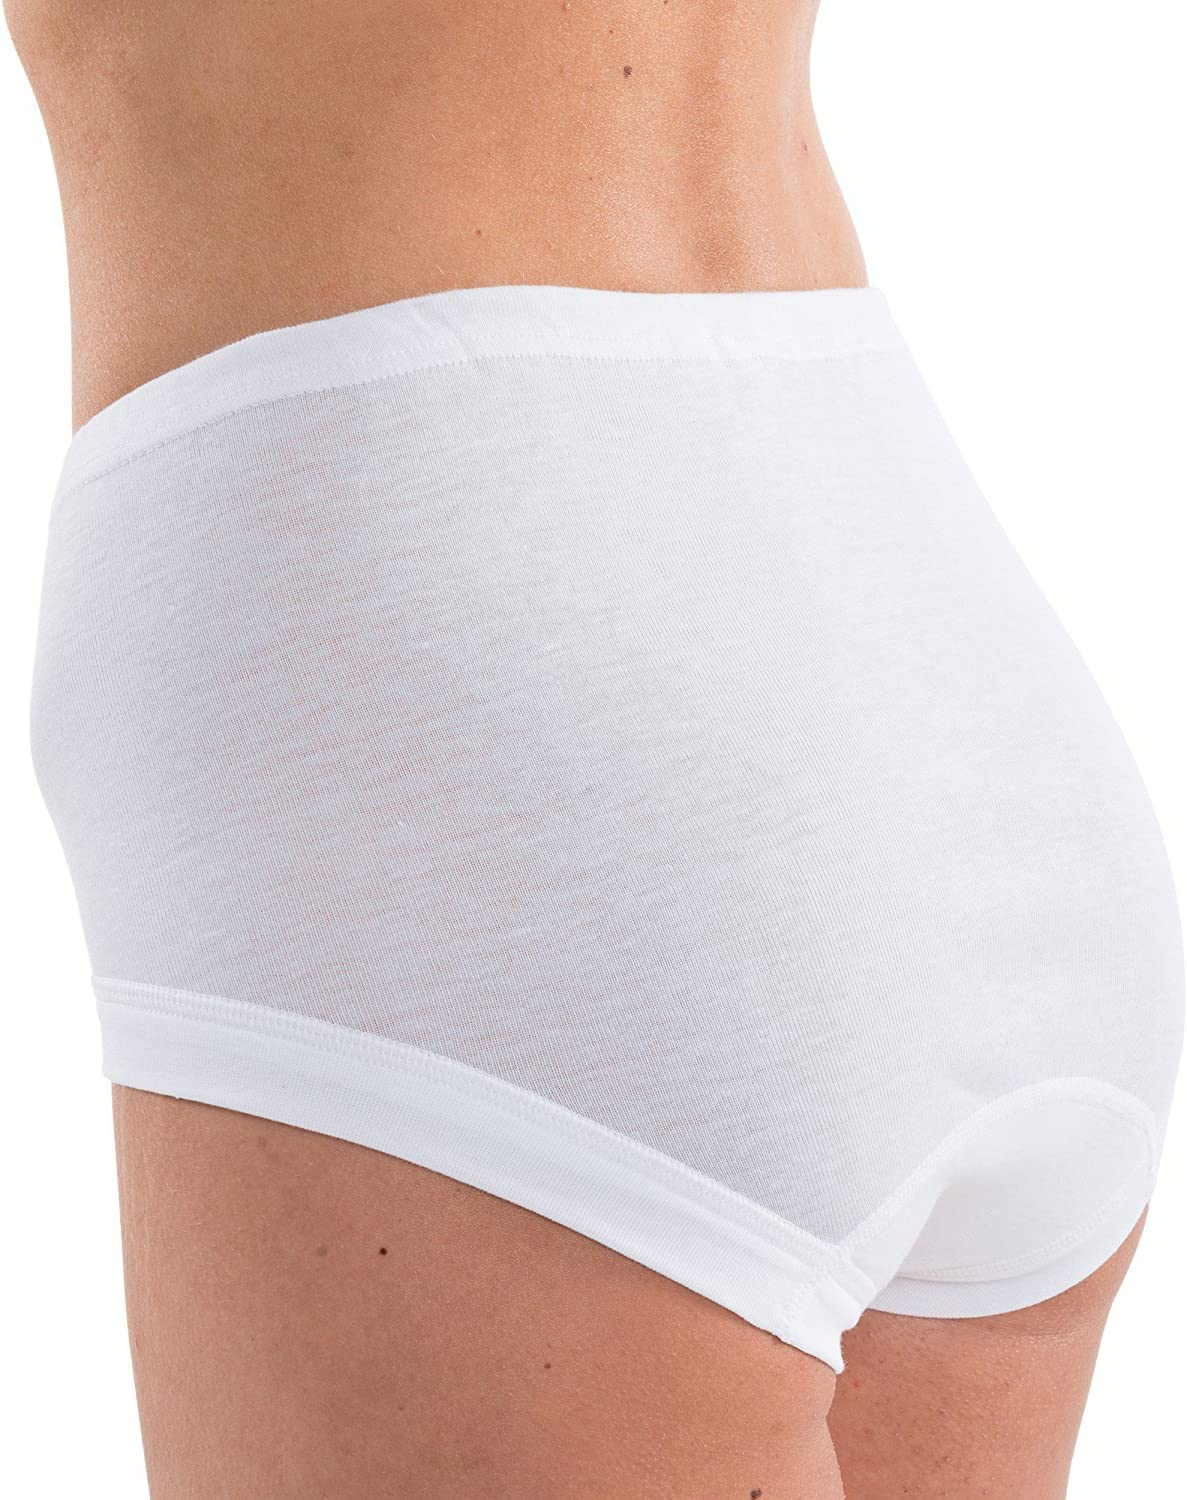 Mme Chainstore taille 14 taille haute short slips culottes slips coton//poly blanc